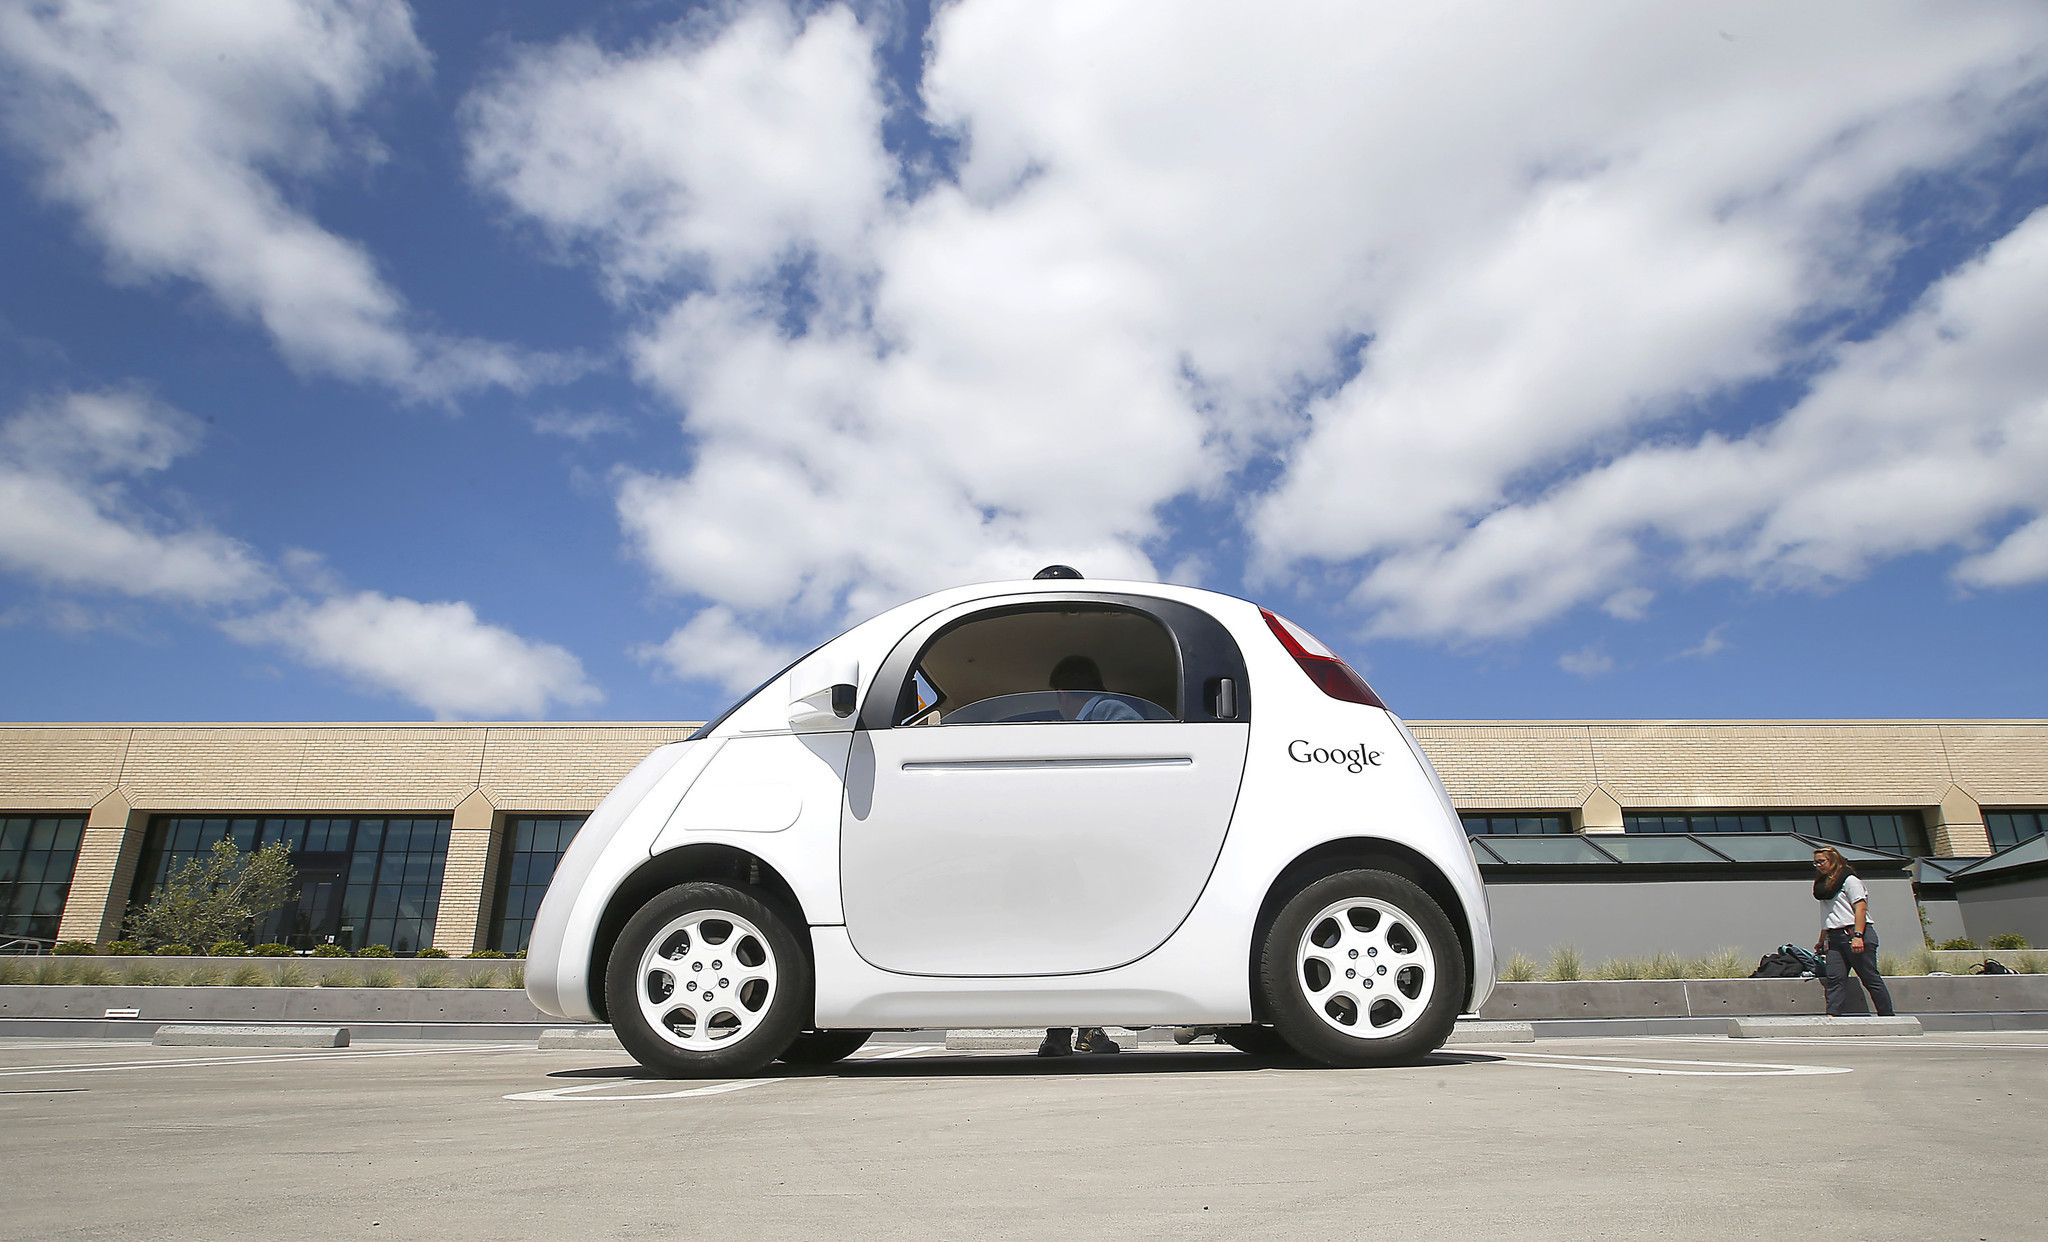 New Survey Self Driving Cars Are Popular In India And China The